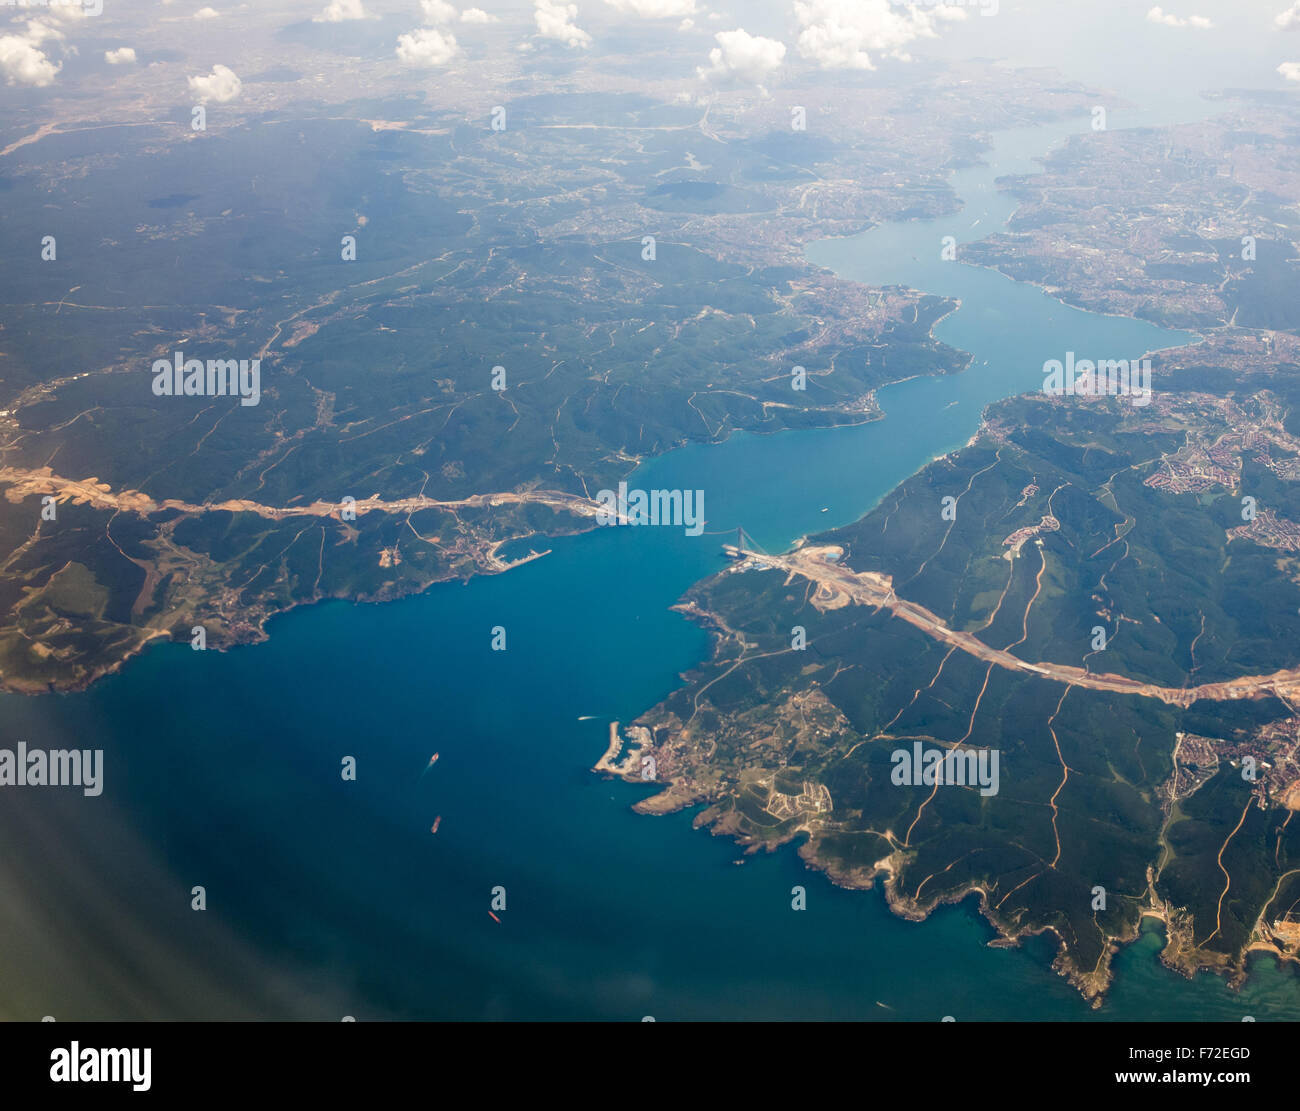 An aerial view of Yavuz Sultan Selim Bridge under construction on the Bosphorus in Istanbul Turkey Stock Photo